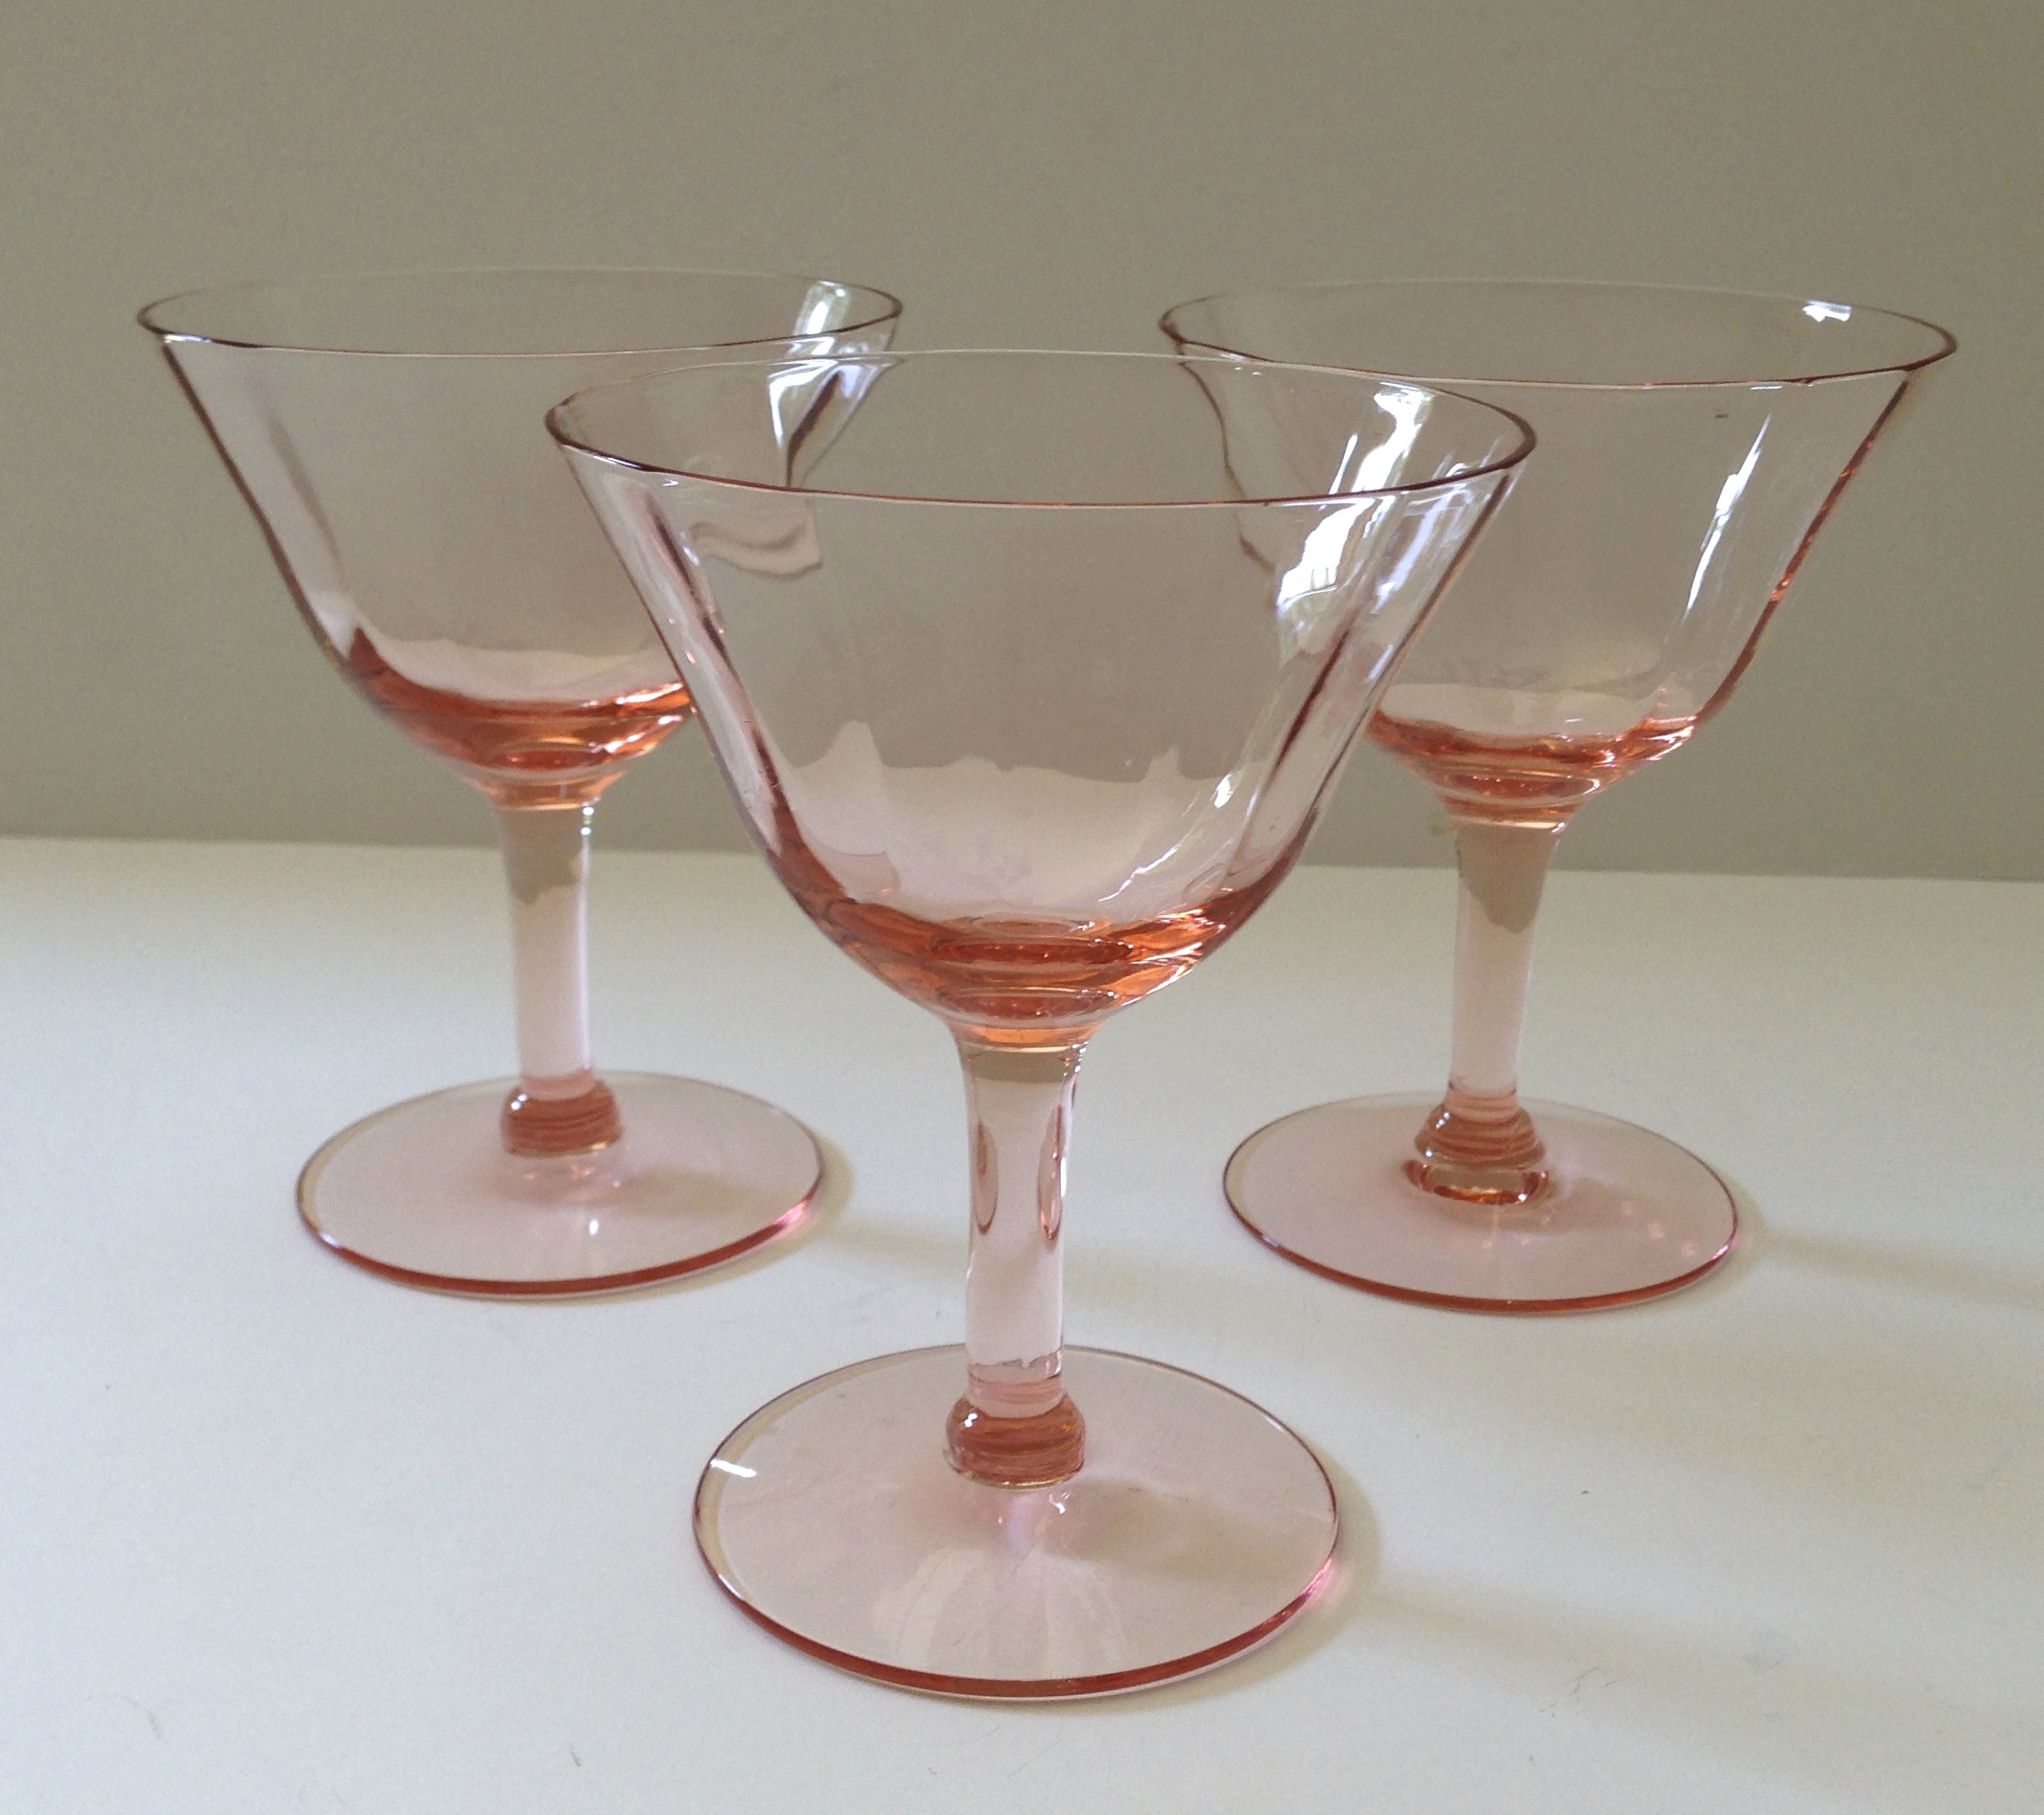 Most Valuable Depression Glass Patterns Amazing Inspiration